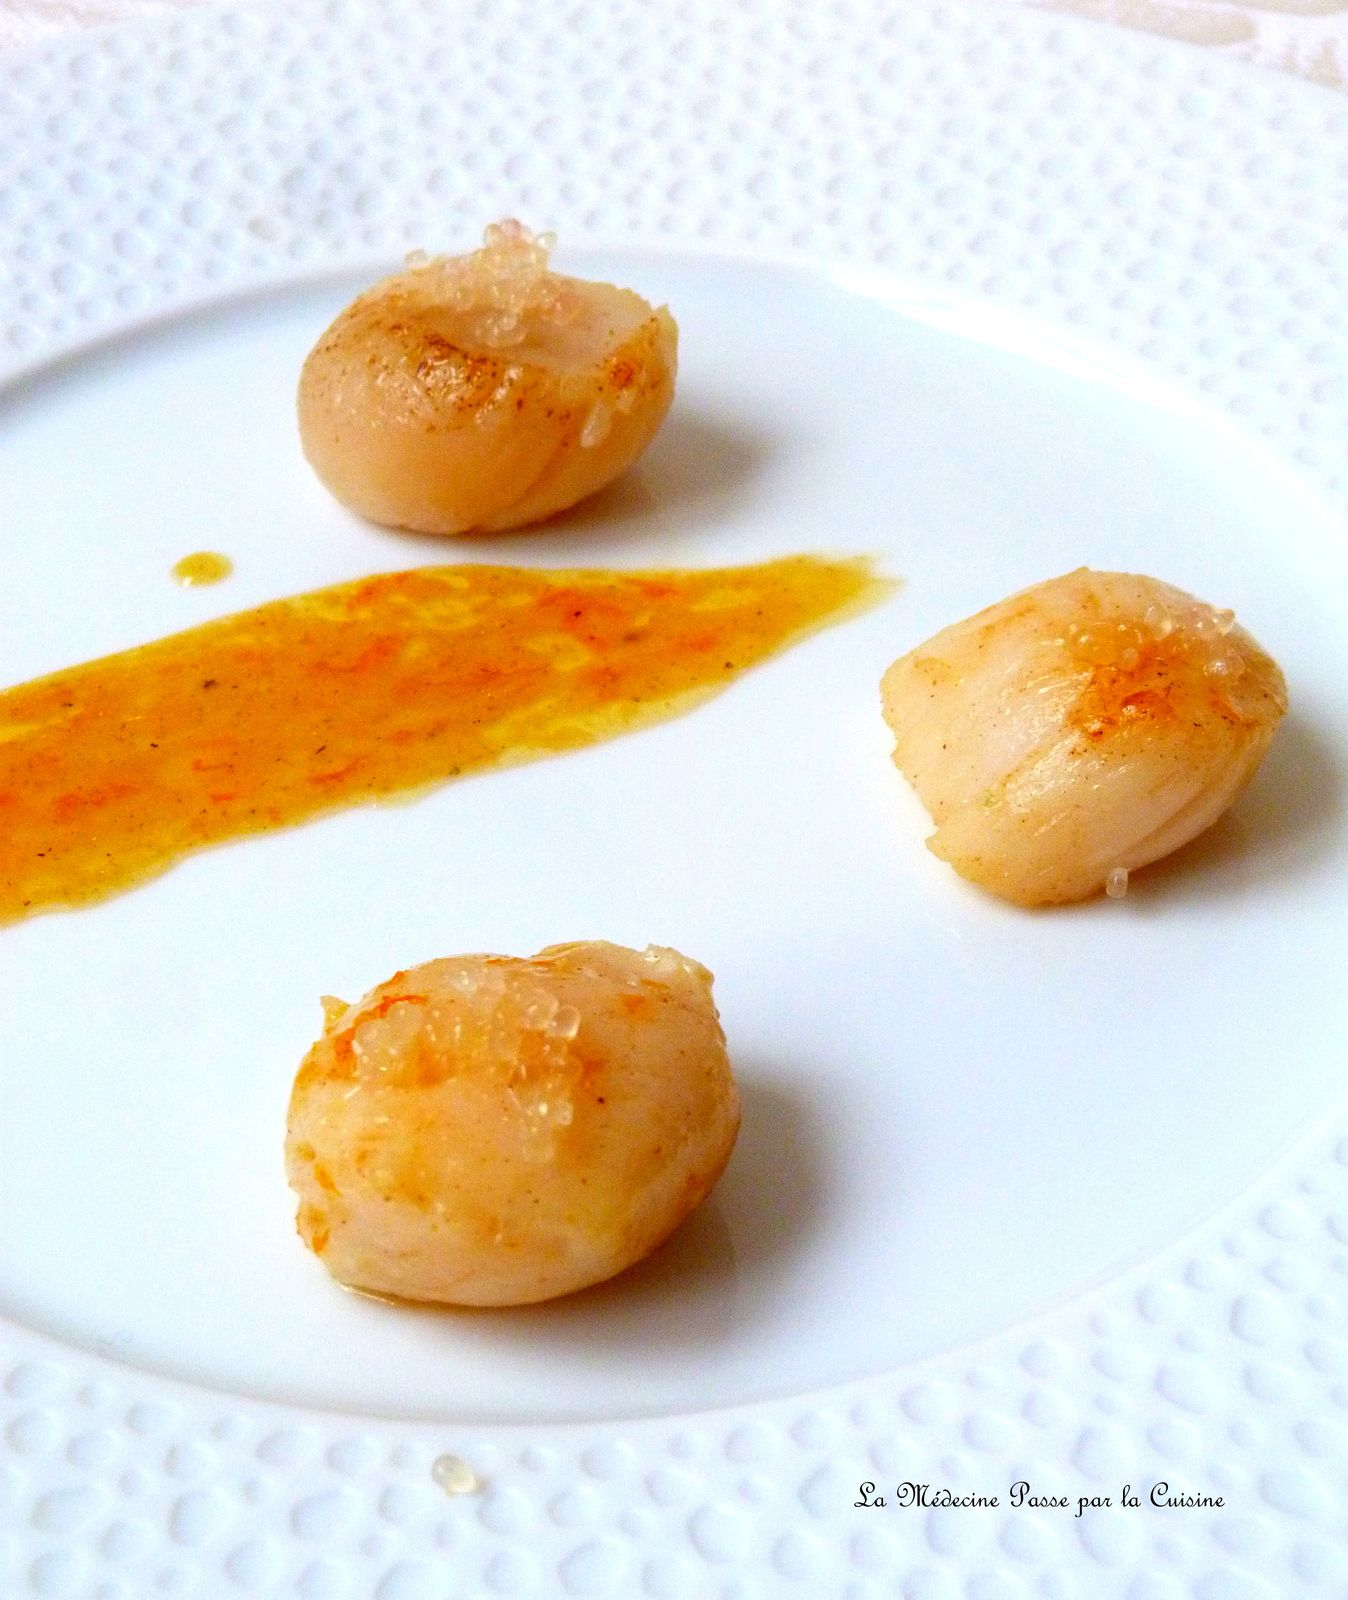 Saint jacques au beurre d'orange et citron caviar